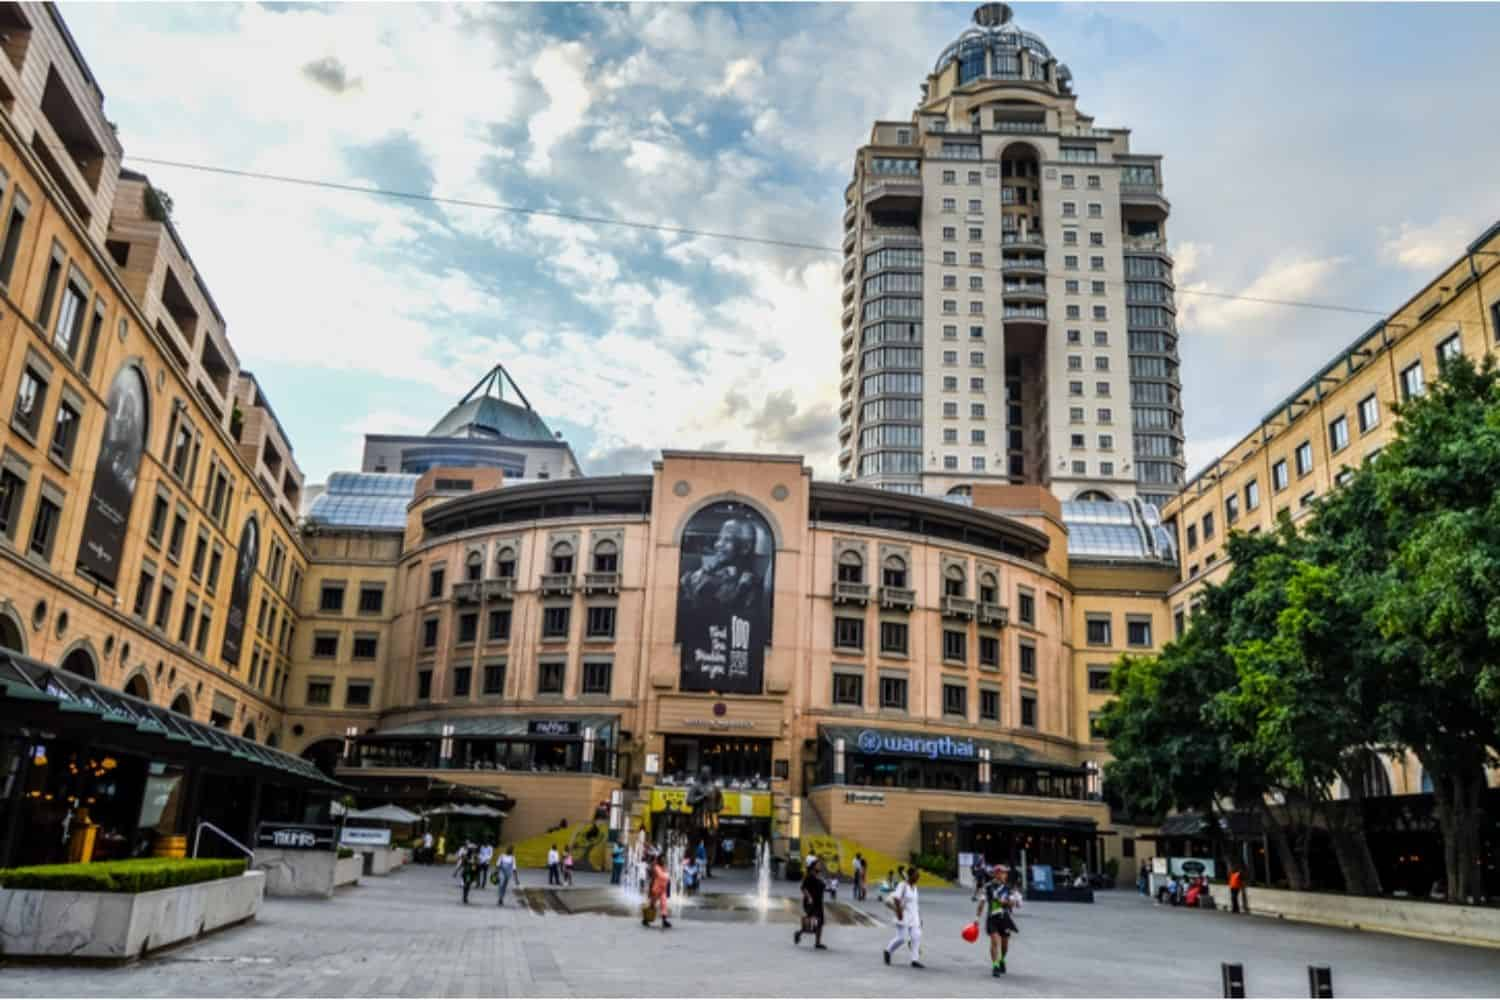 woman commits suicide at Sandton City mall